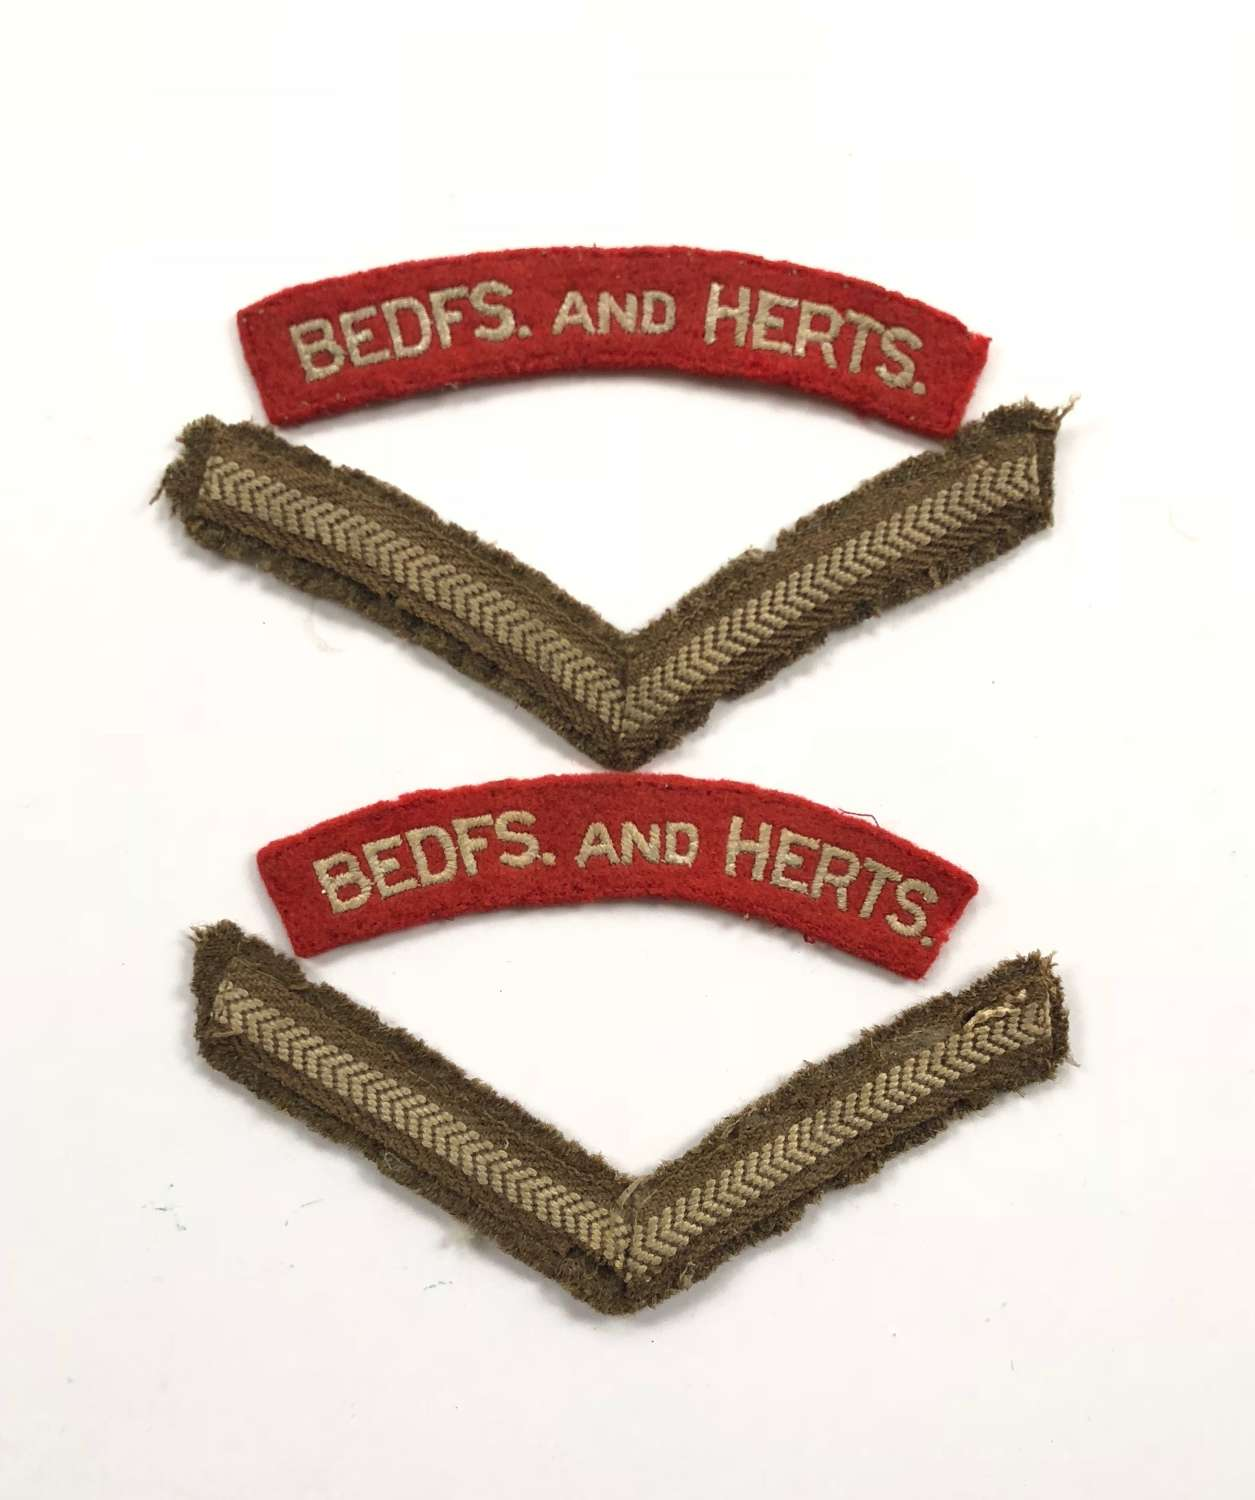 WW2 / Cold War Period Beds & Herts Shoulder Titles and Rank